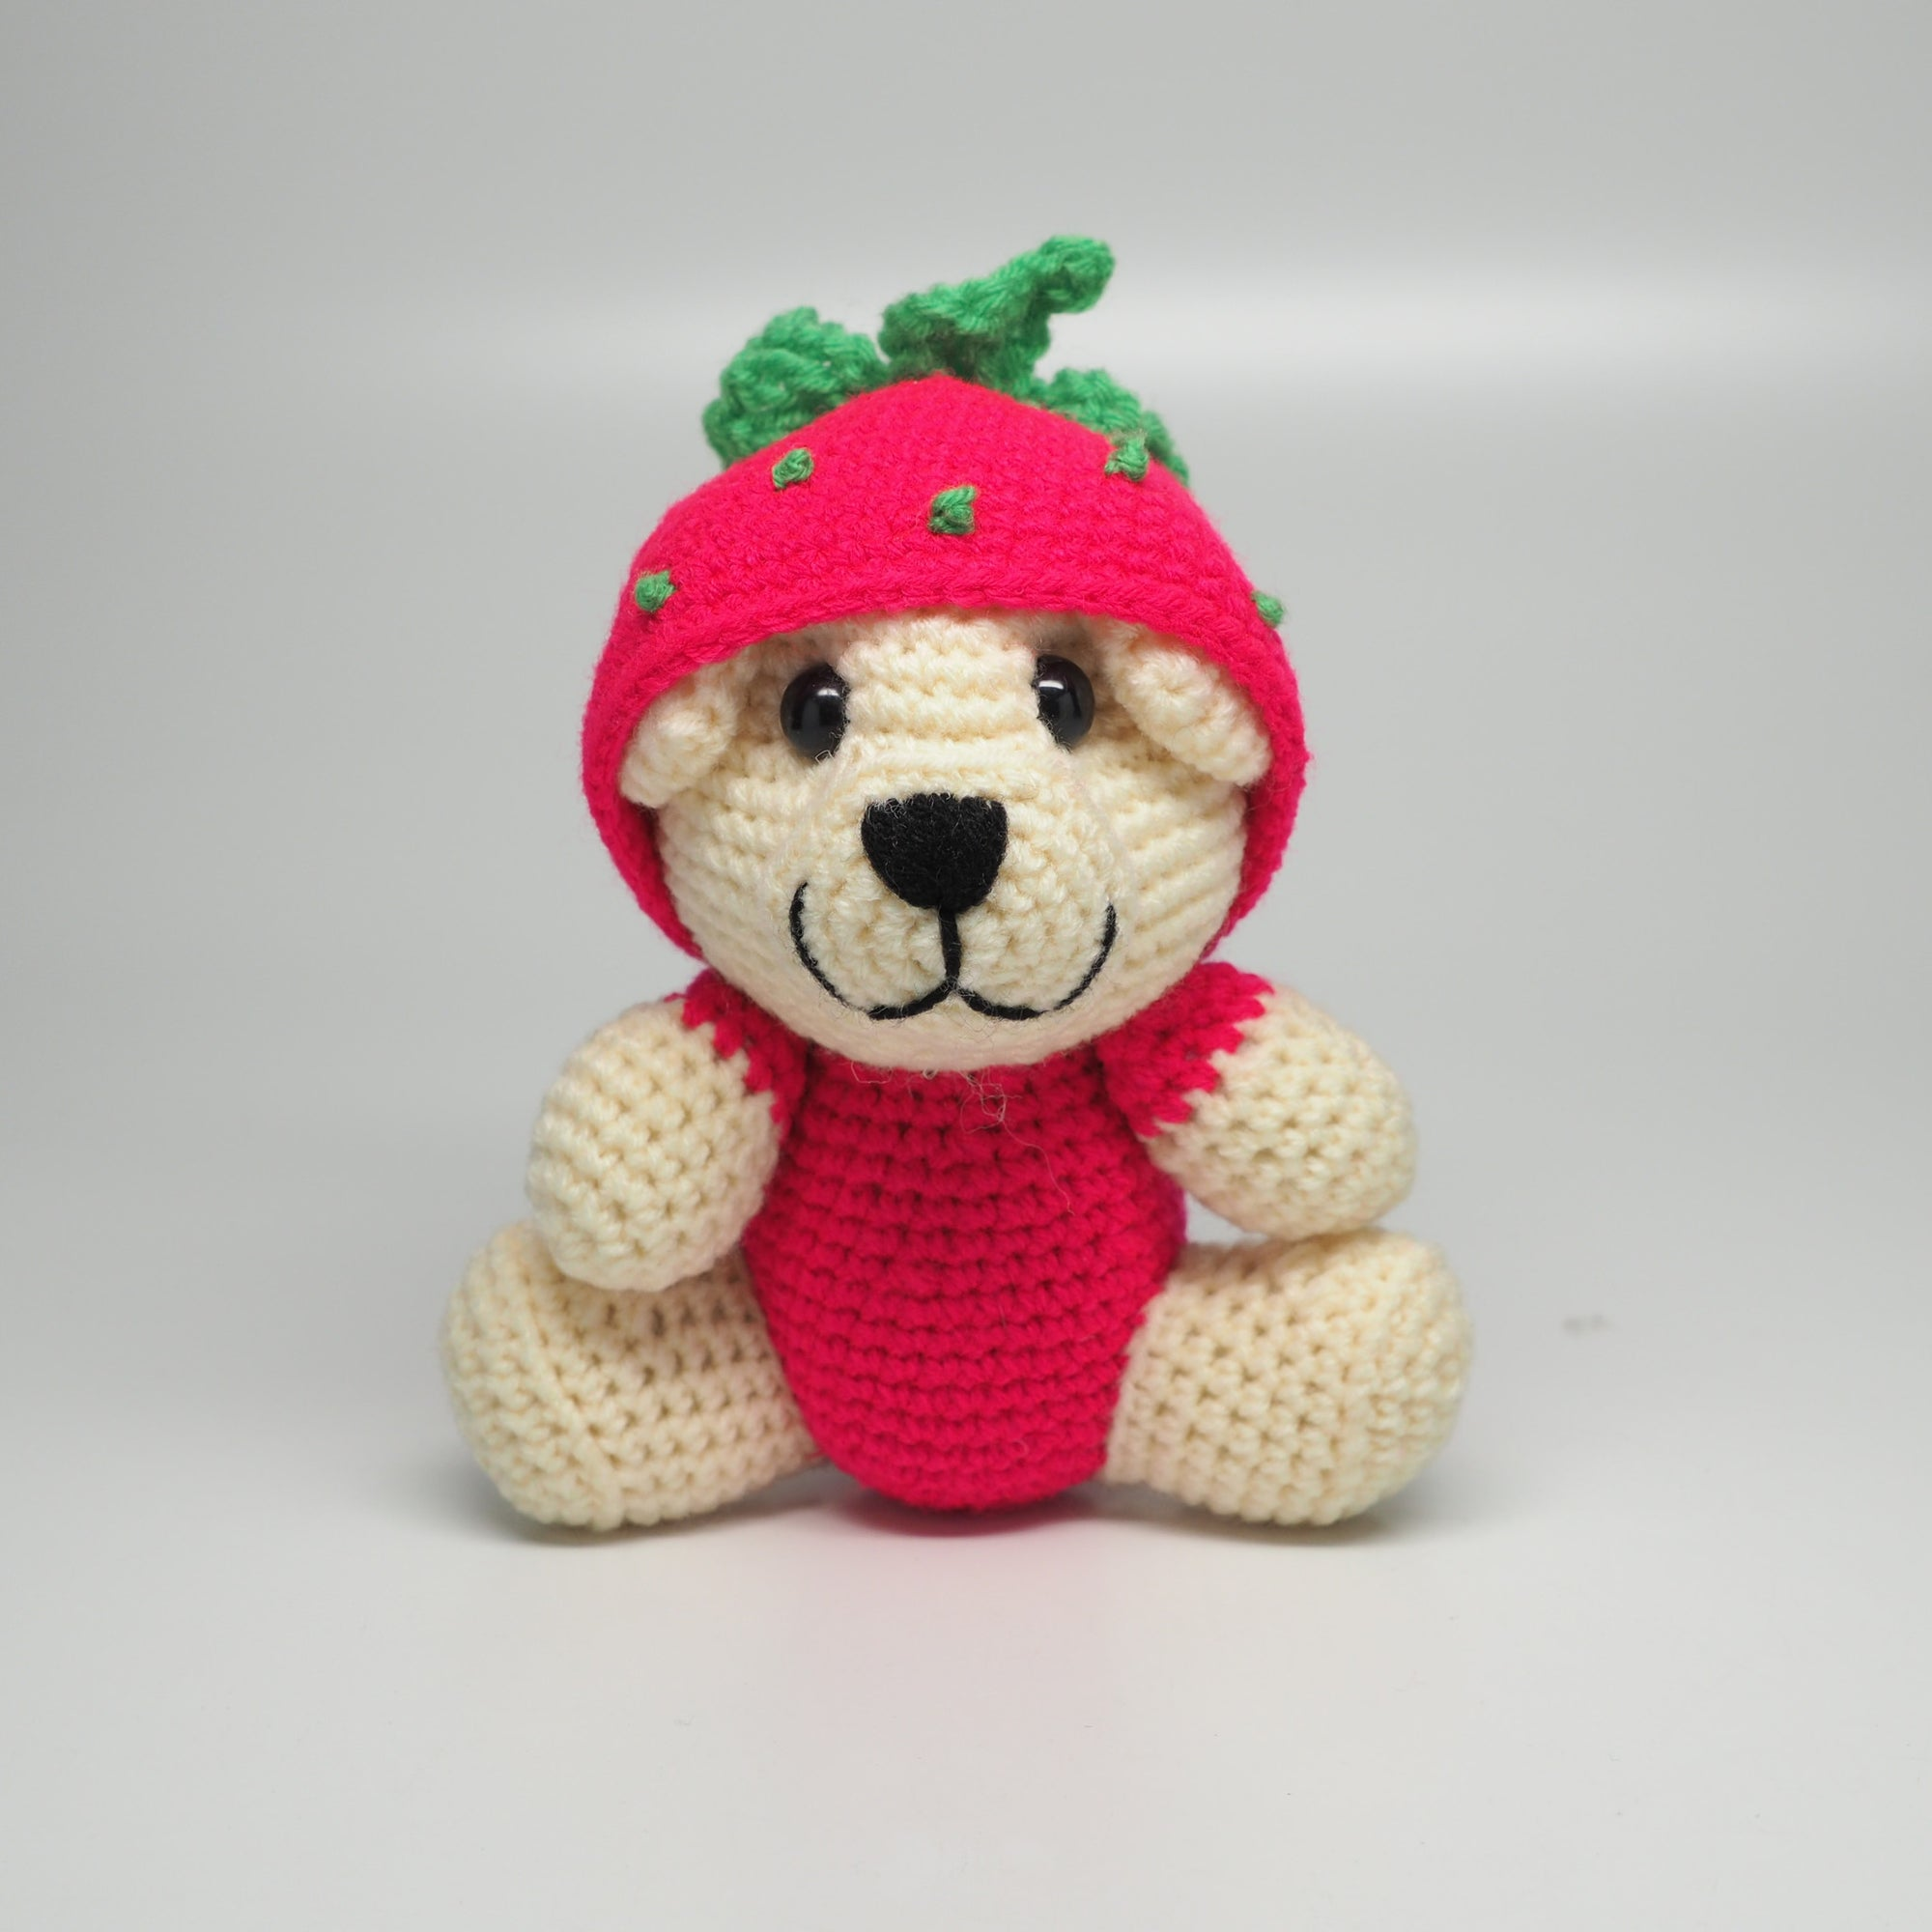 Strawbeary Crochet Teddy Bear - Quan Jewelry